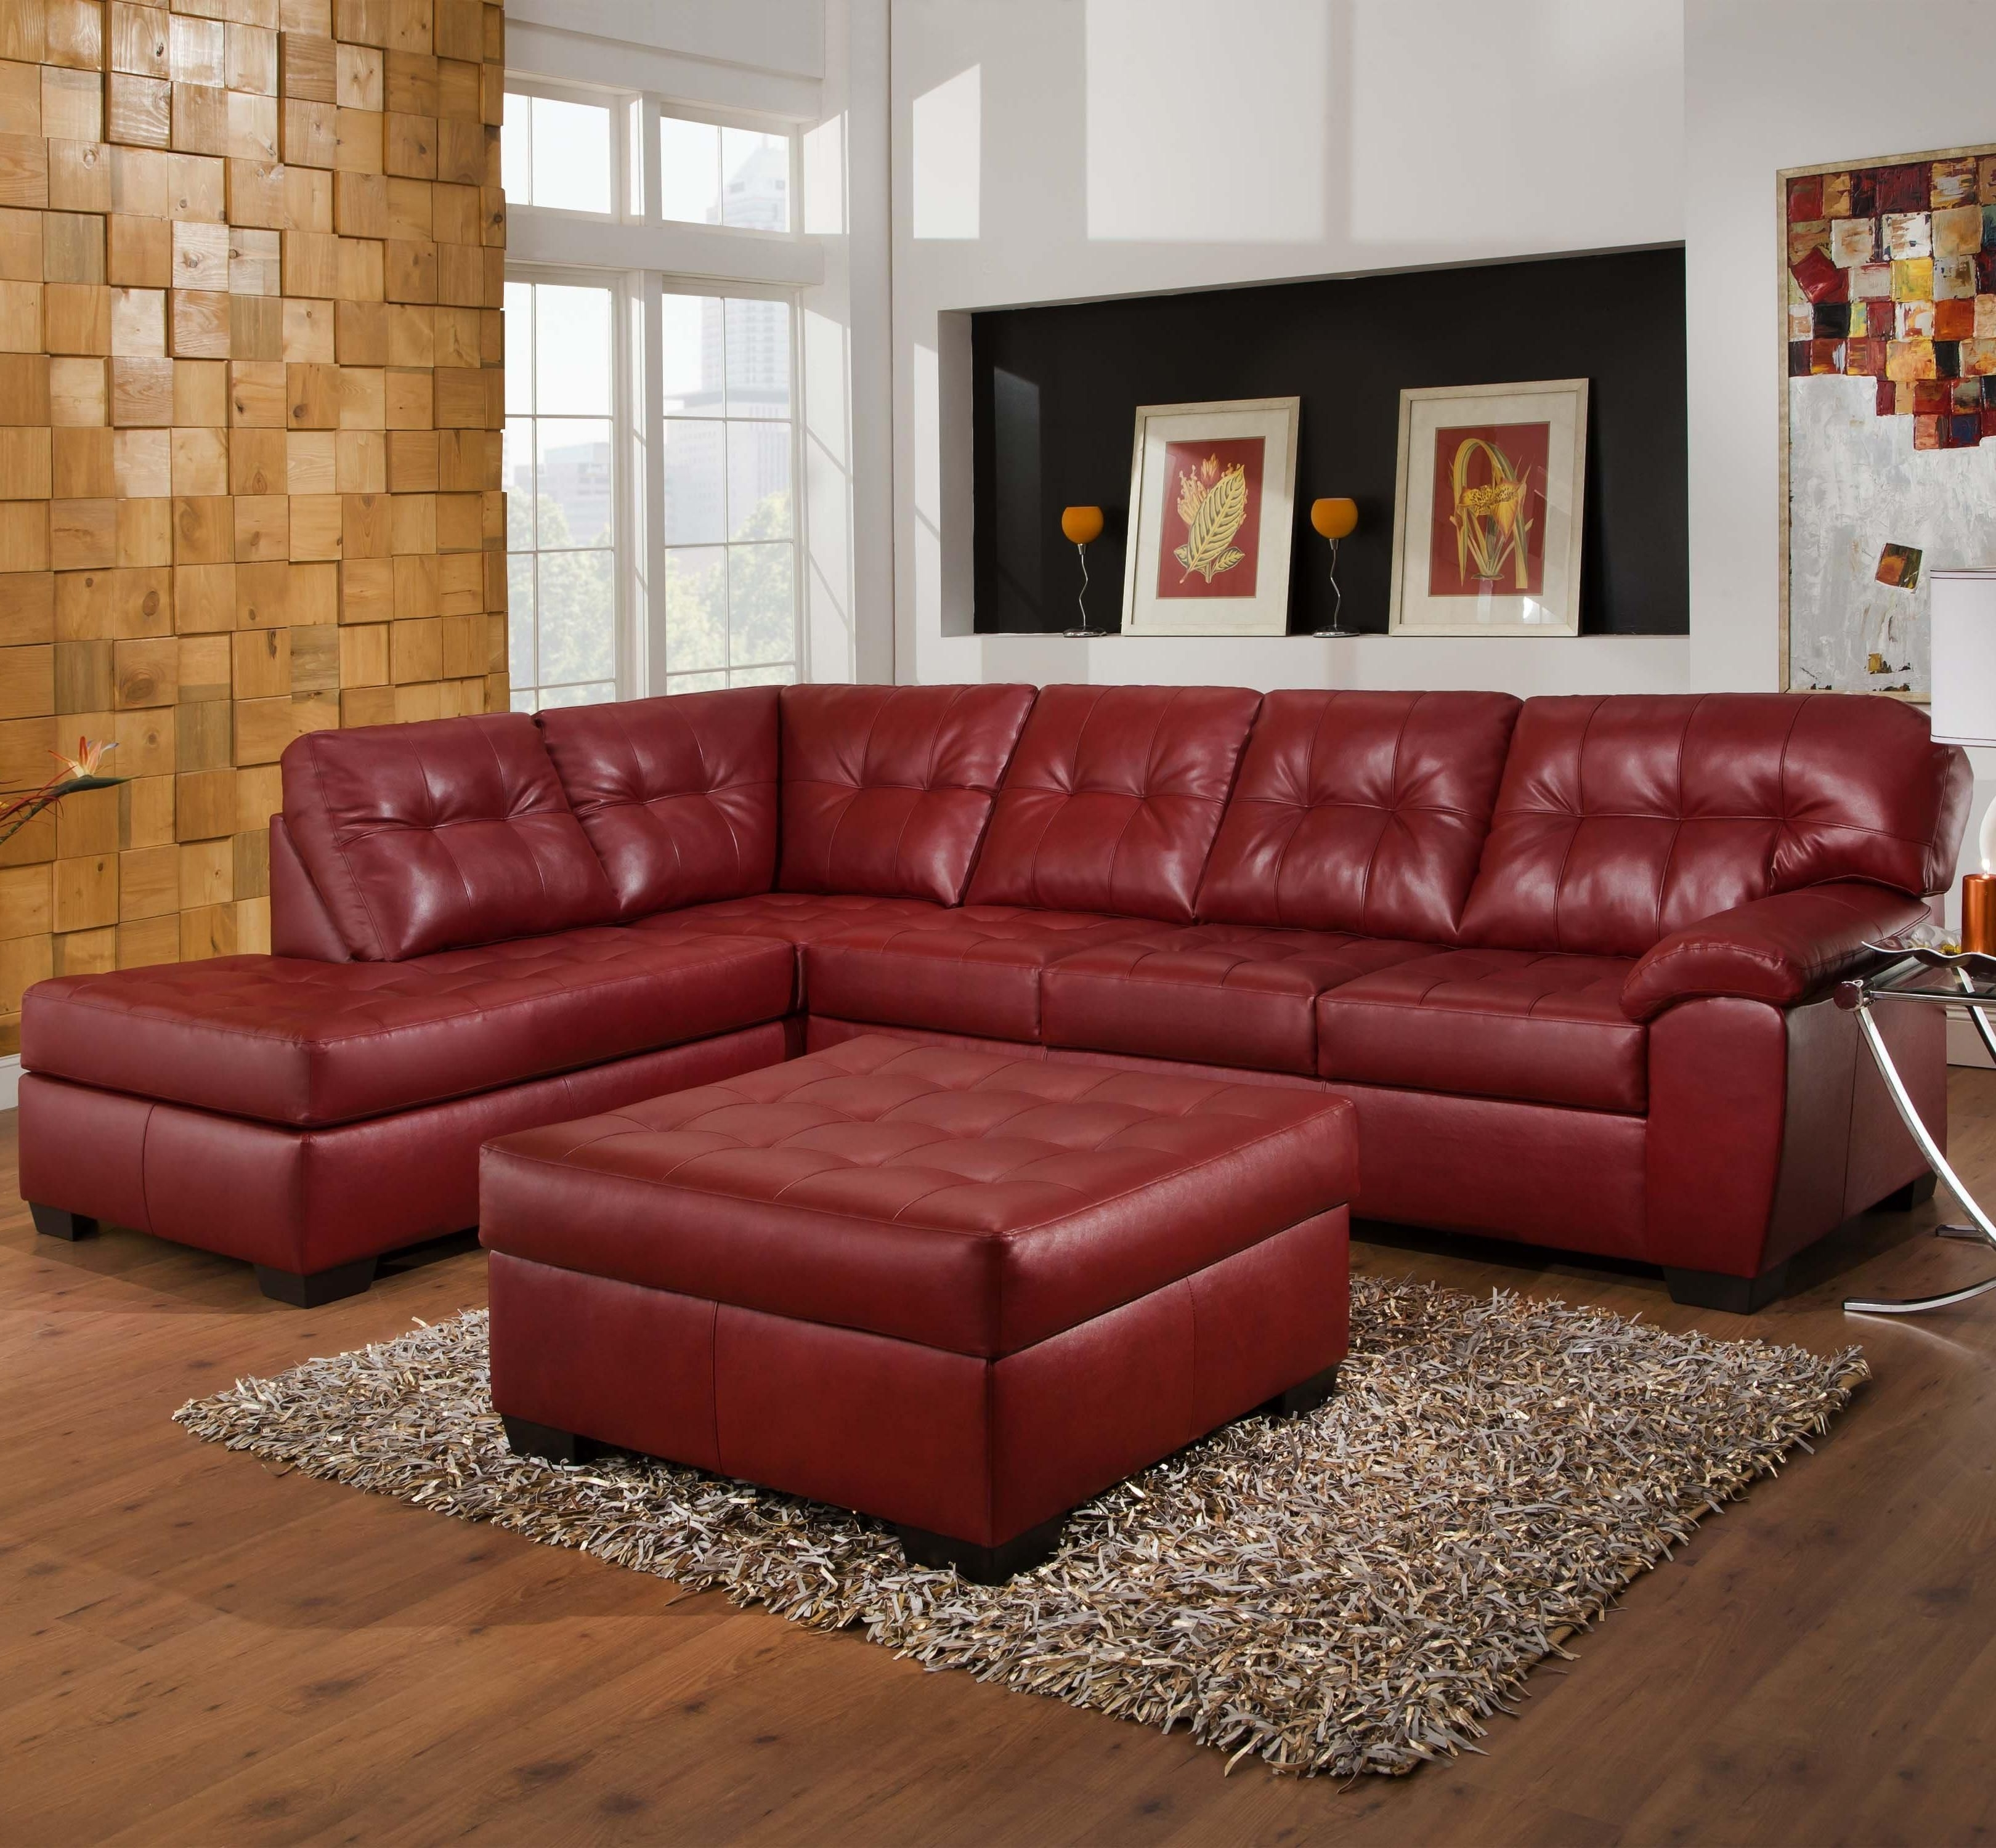 Most Recent 9569 2 Piece Sectional With Tufted Seats & Backsimmons With Rochester Ny Sectional Sofas (View 13 of 15)